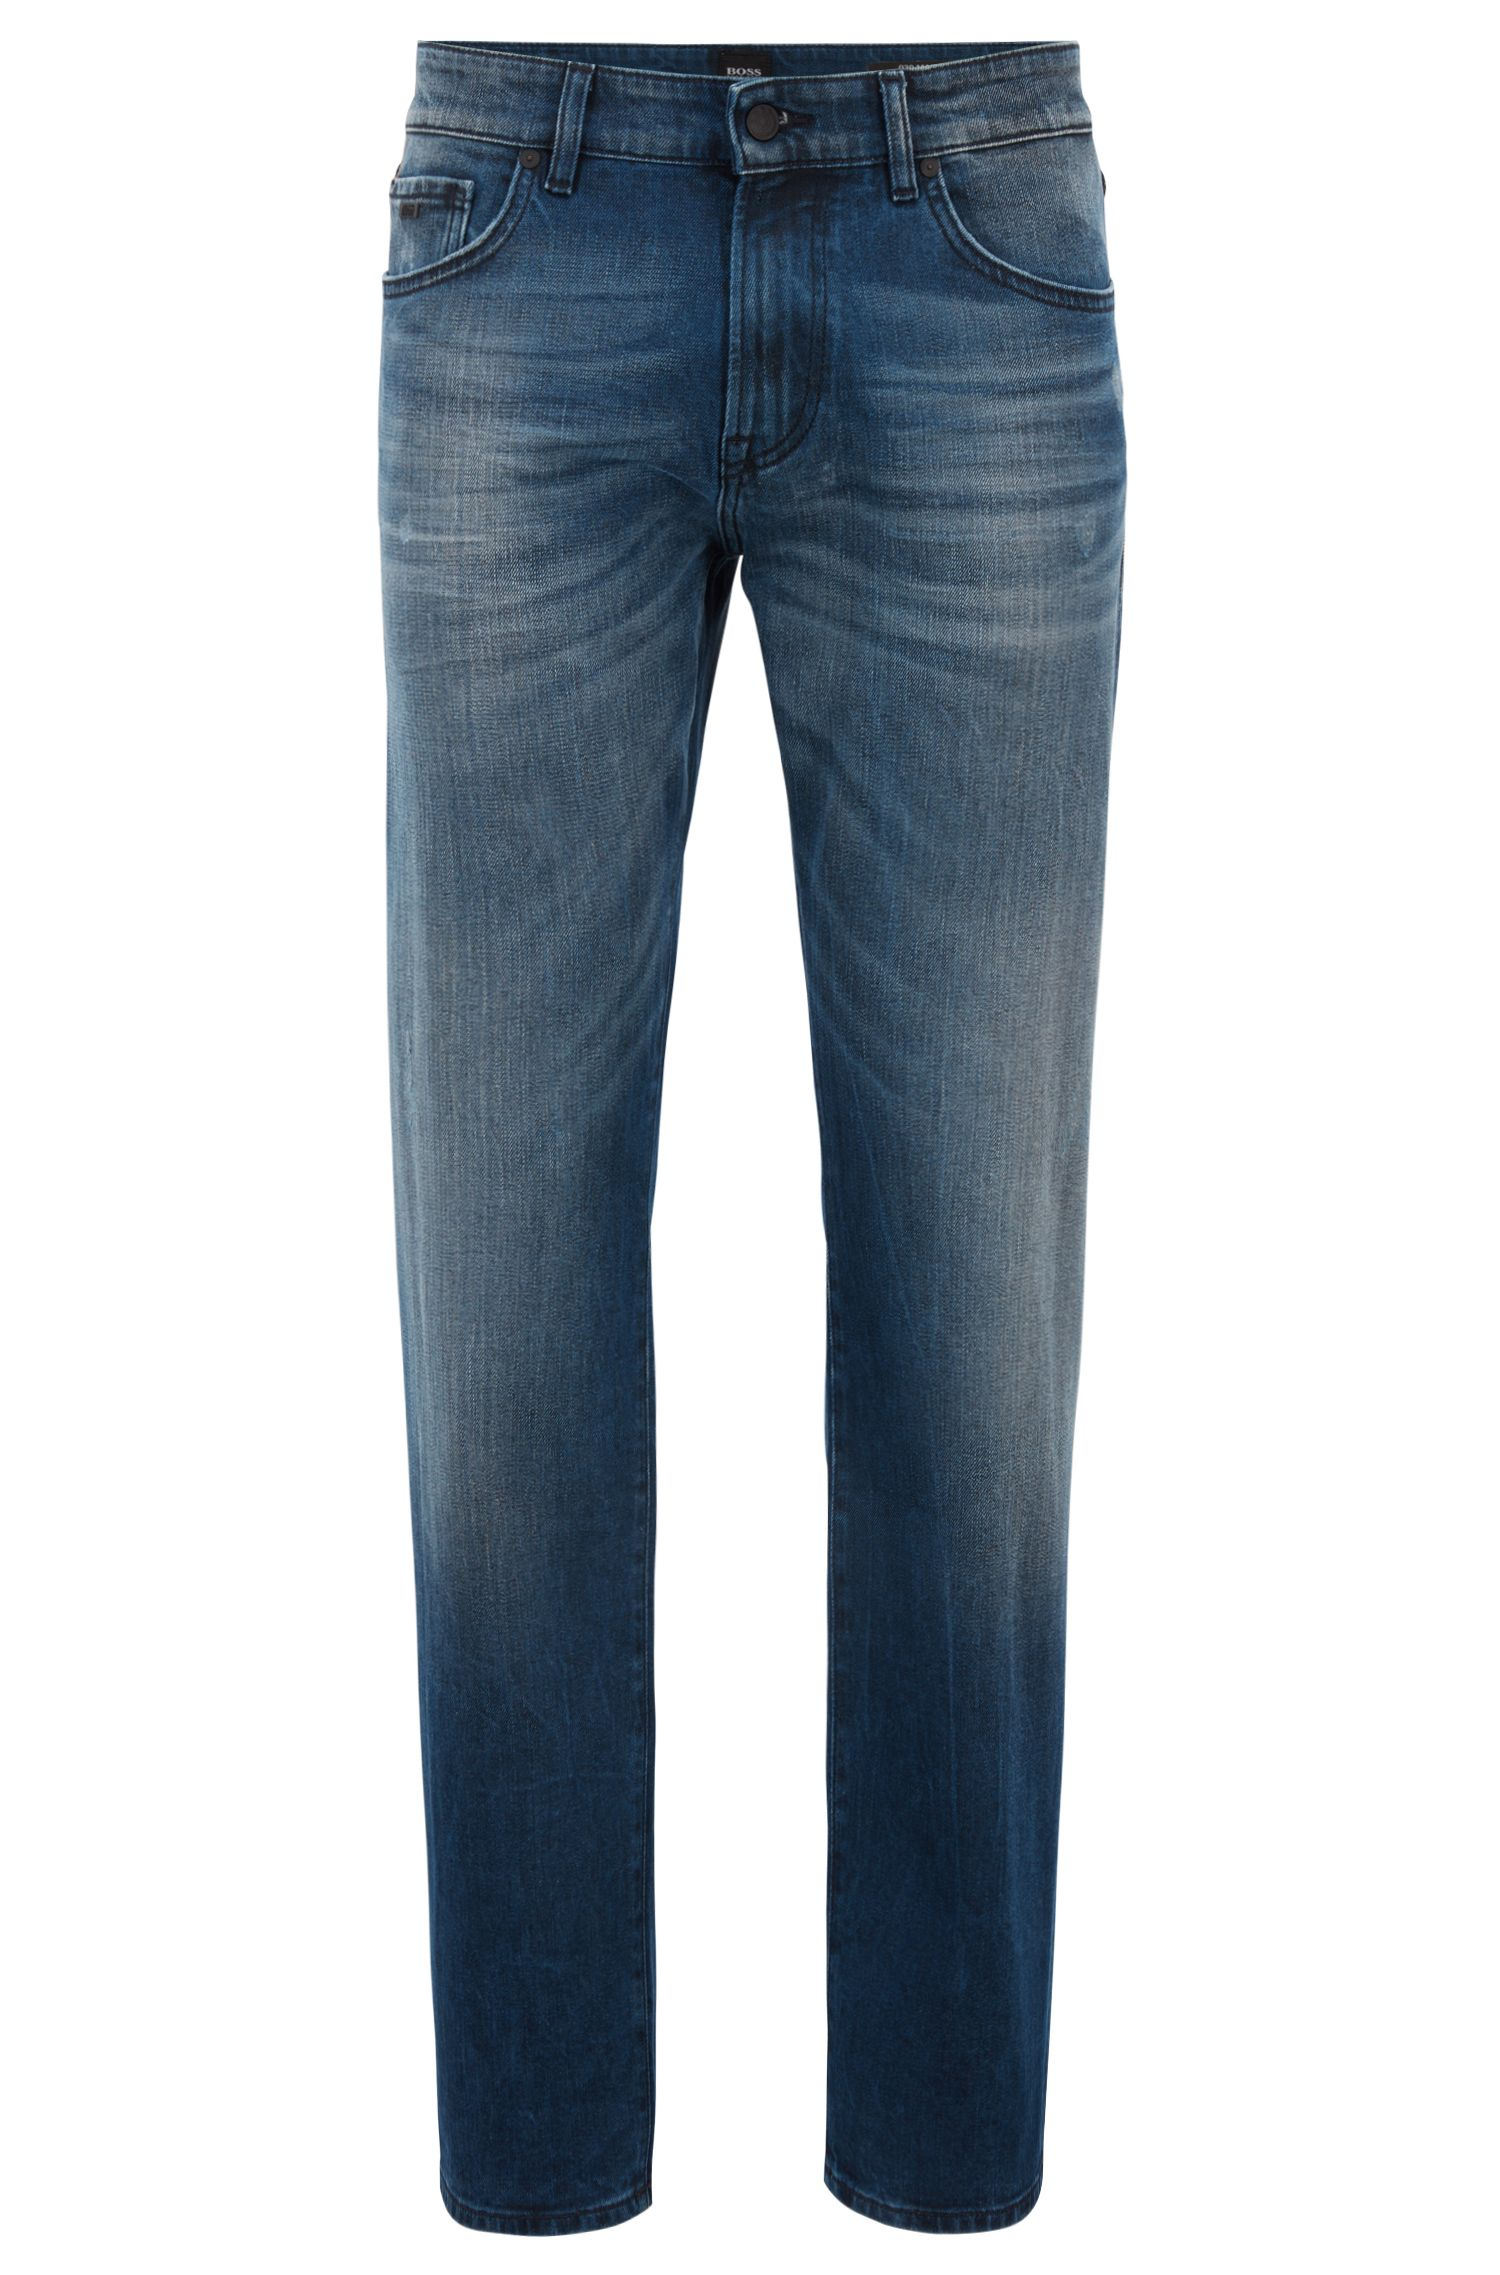 Jeans regular fit in denim elasticizzato blu medio rivestito